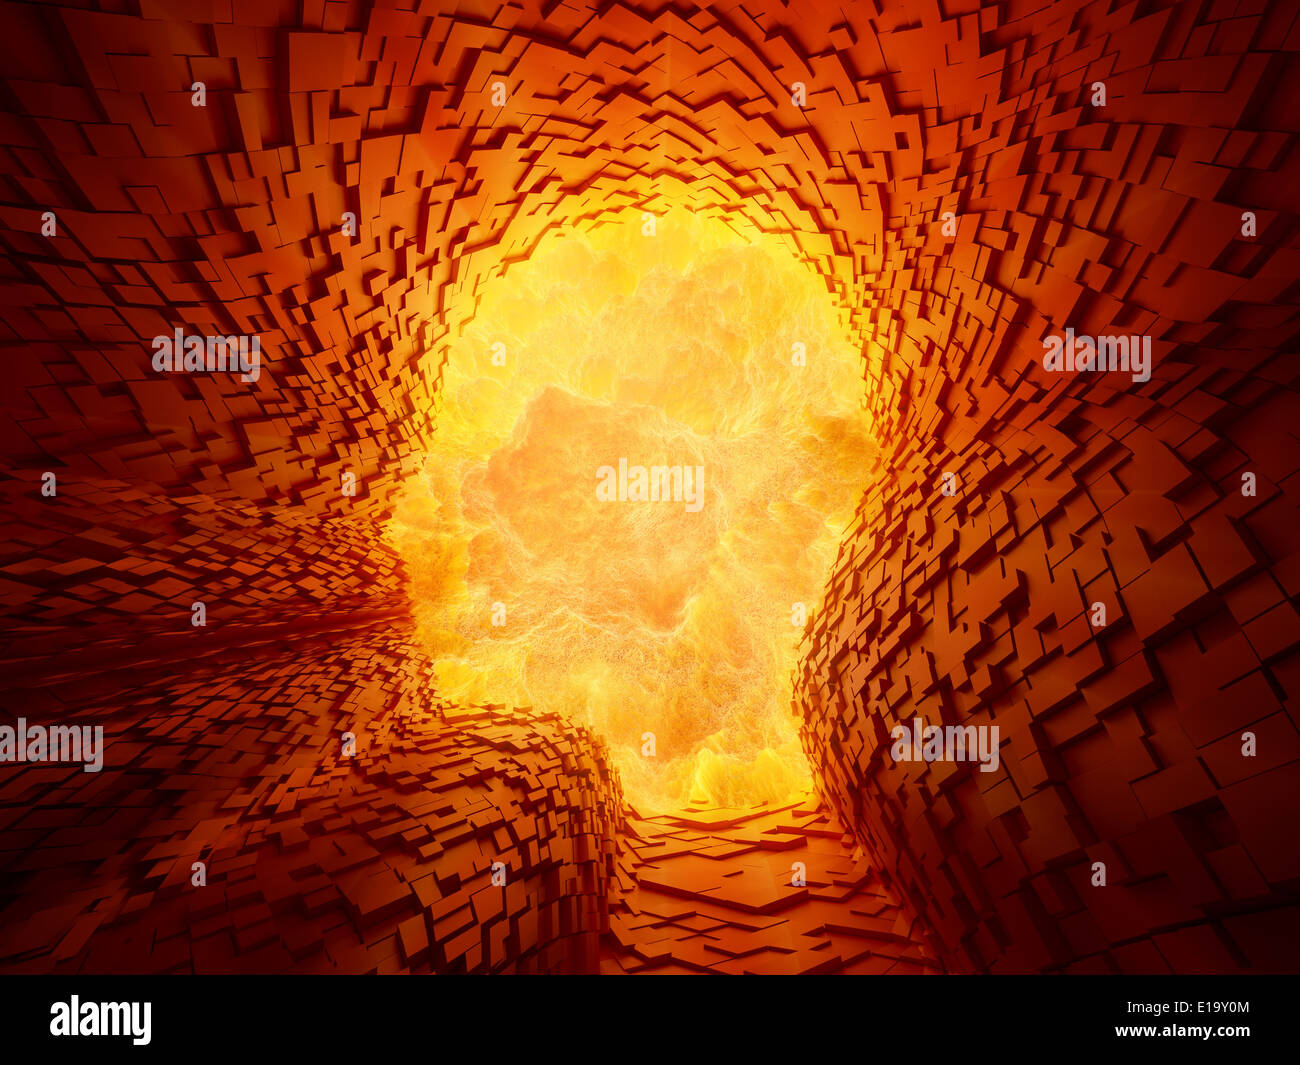 A violent explosion inside a face shaped tunnel - Stock Image